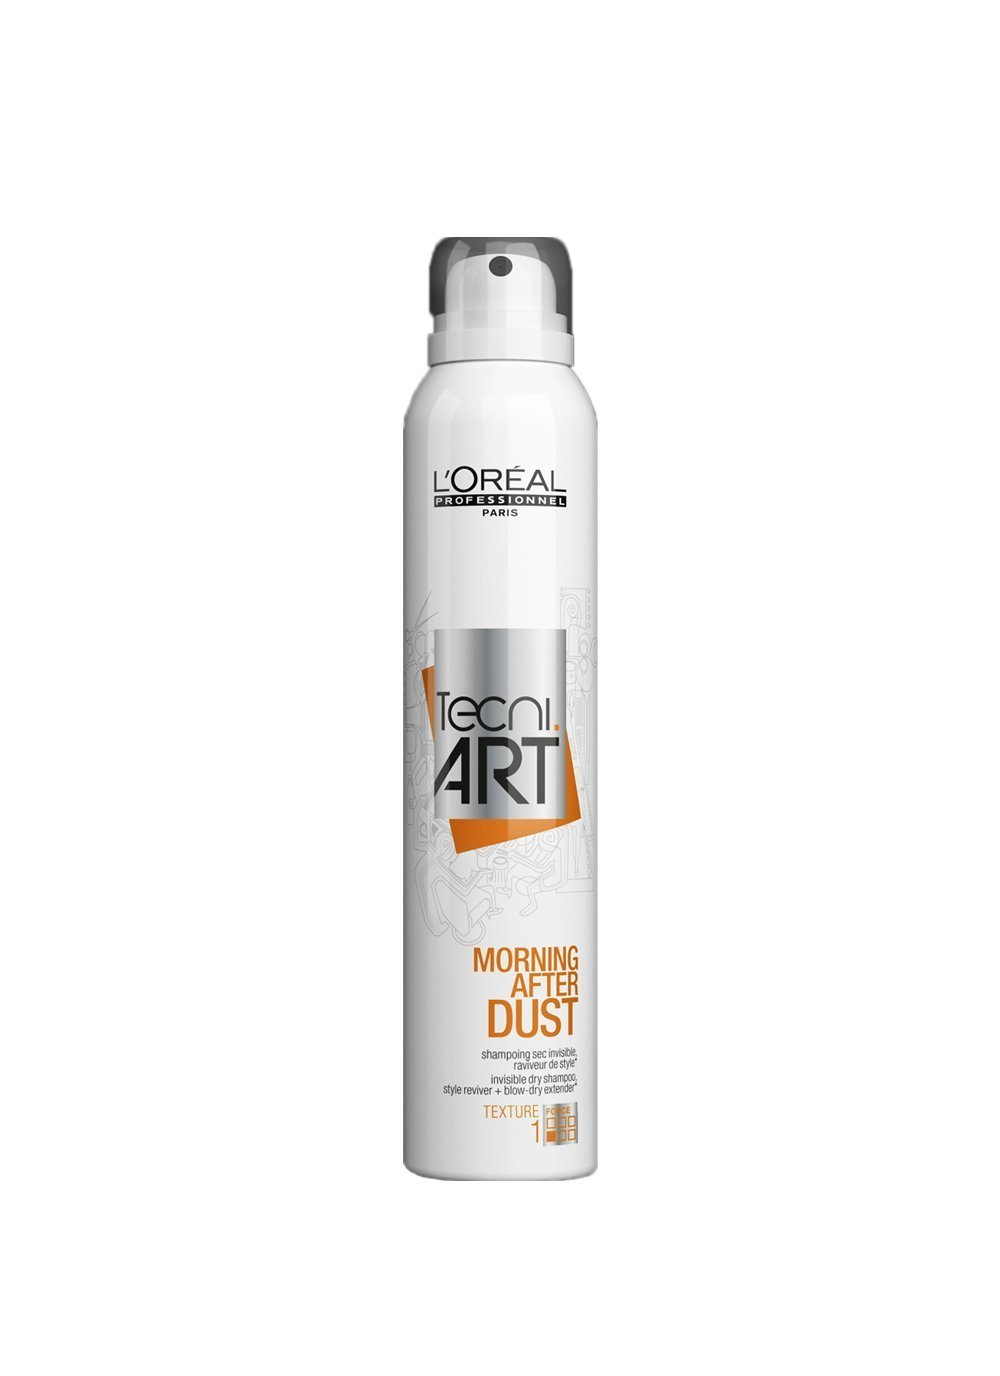 L'Oreal Professionnel Care& Styling TNA Morning After Dust Champú Seco - 200 ml Loreal Deutschland GmbH 3474636108374